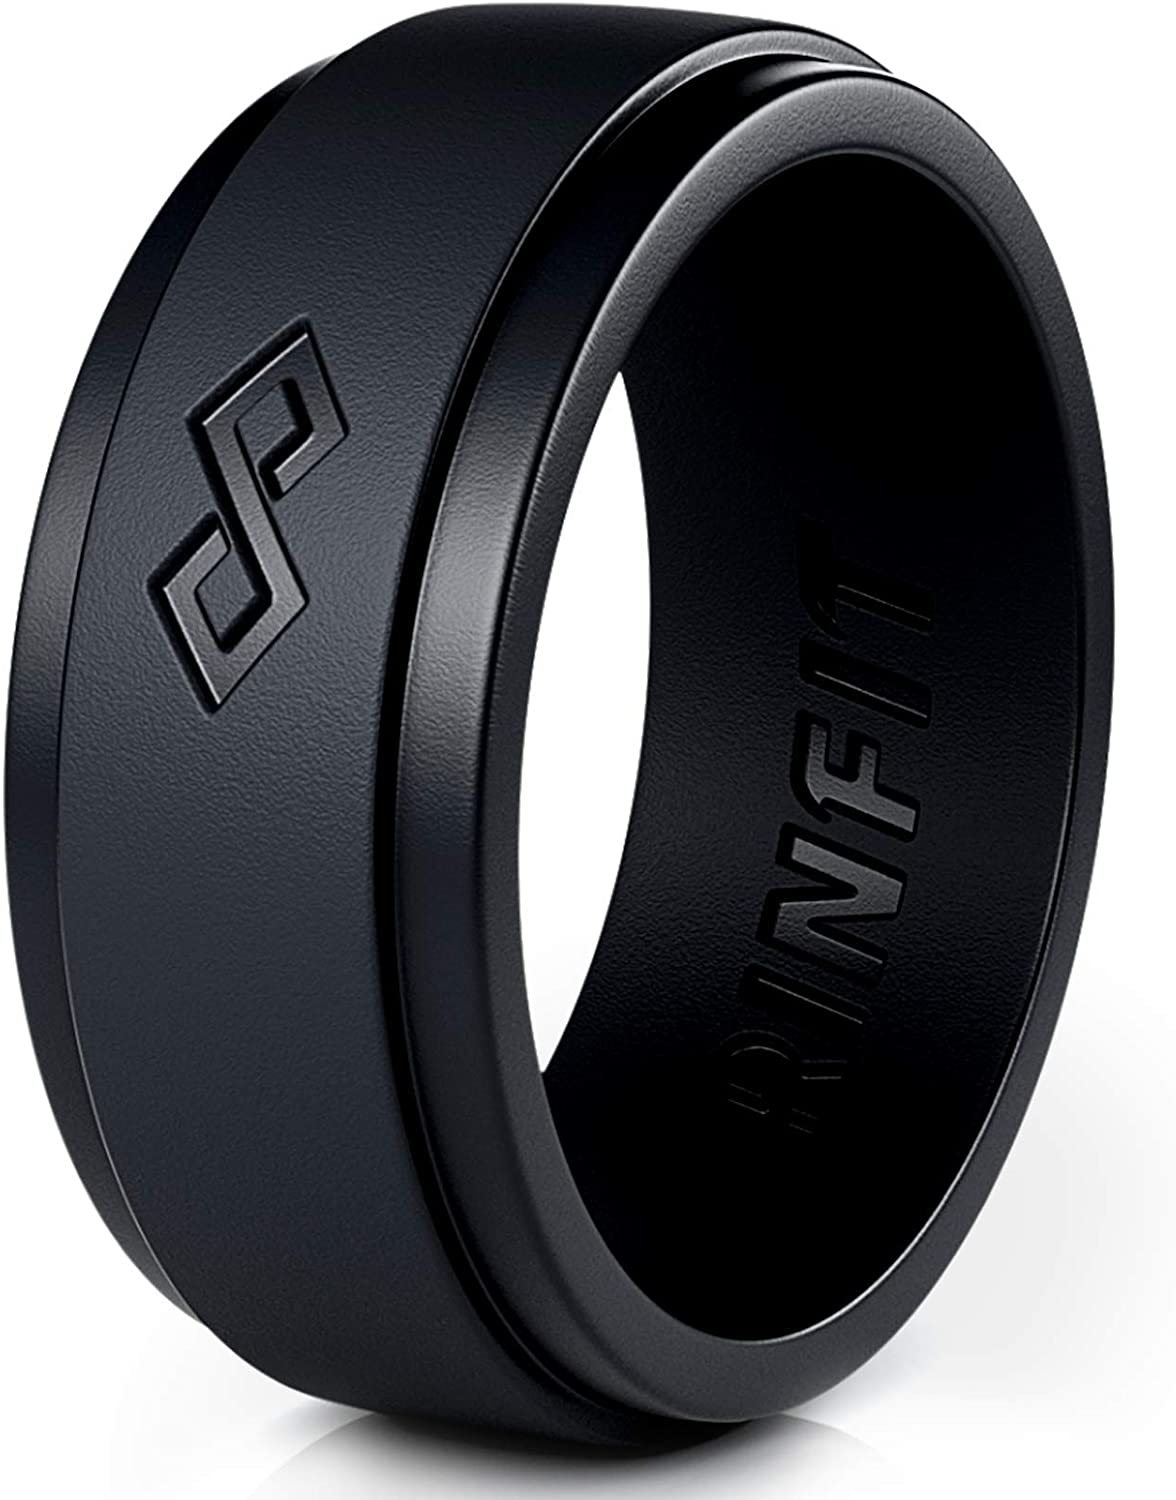 Silicone Wedding Ring for Men by Rinfit. 1 or 3 Rings Pack. Designed, Safe & Soft Men's Silicon Rubber Bands. Comfortable & Durable Wedding Band Replacement. Size 7-14 (7, Black)